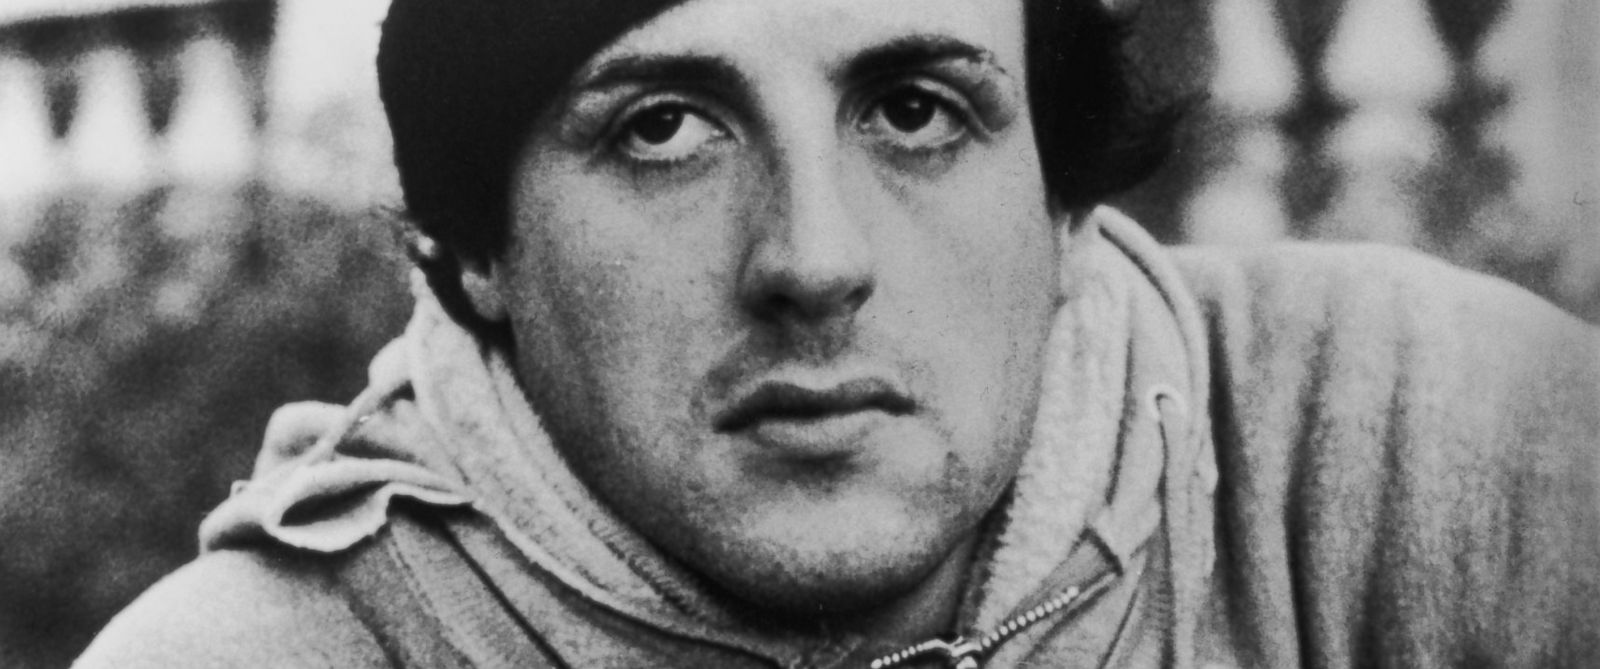 PHOTO: American actor Sylvester Stallone wears a knit hat, sweatshirts ...